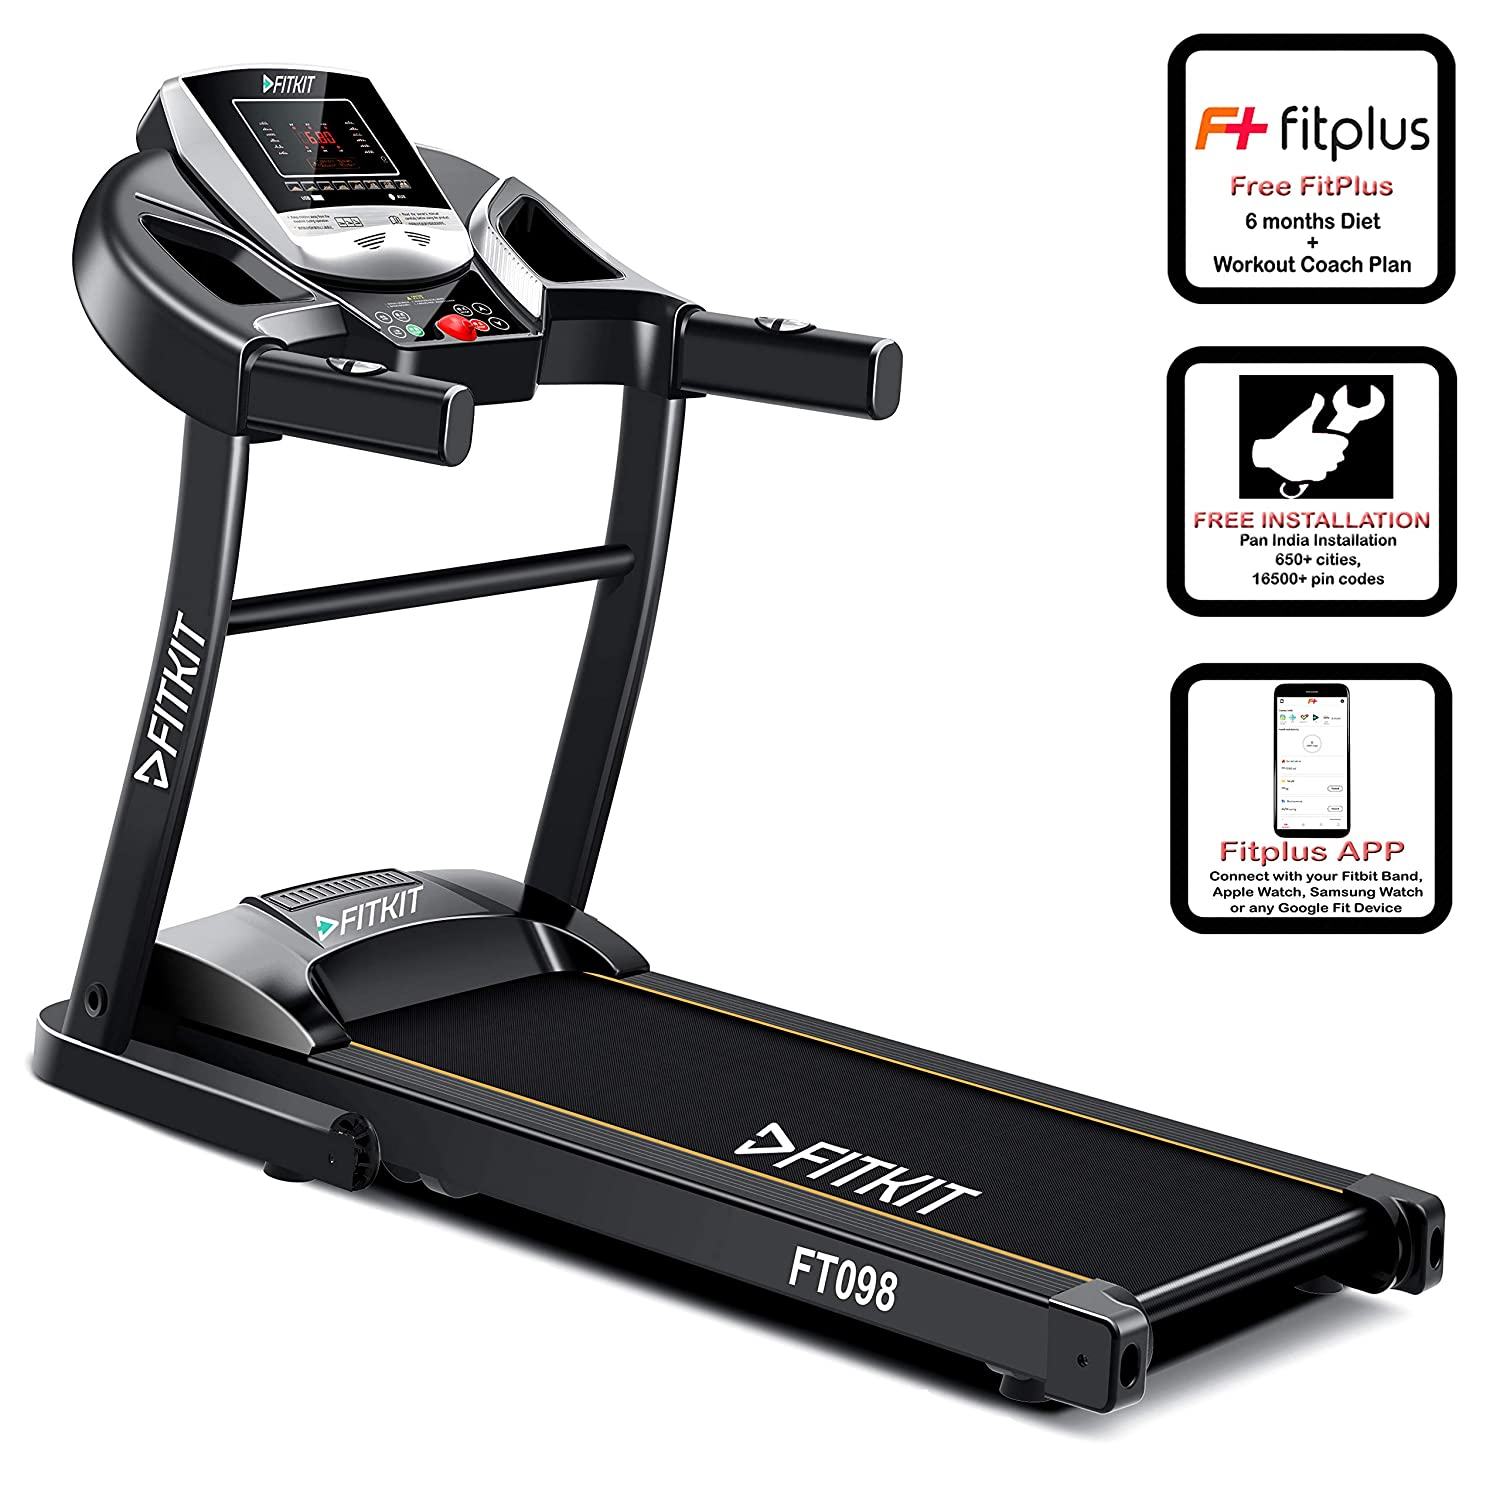 Fitkit FT098 1.5 HP Motorized Treadmill